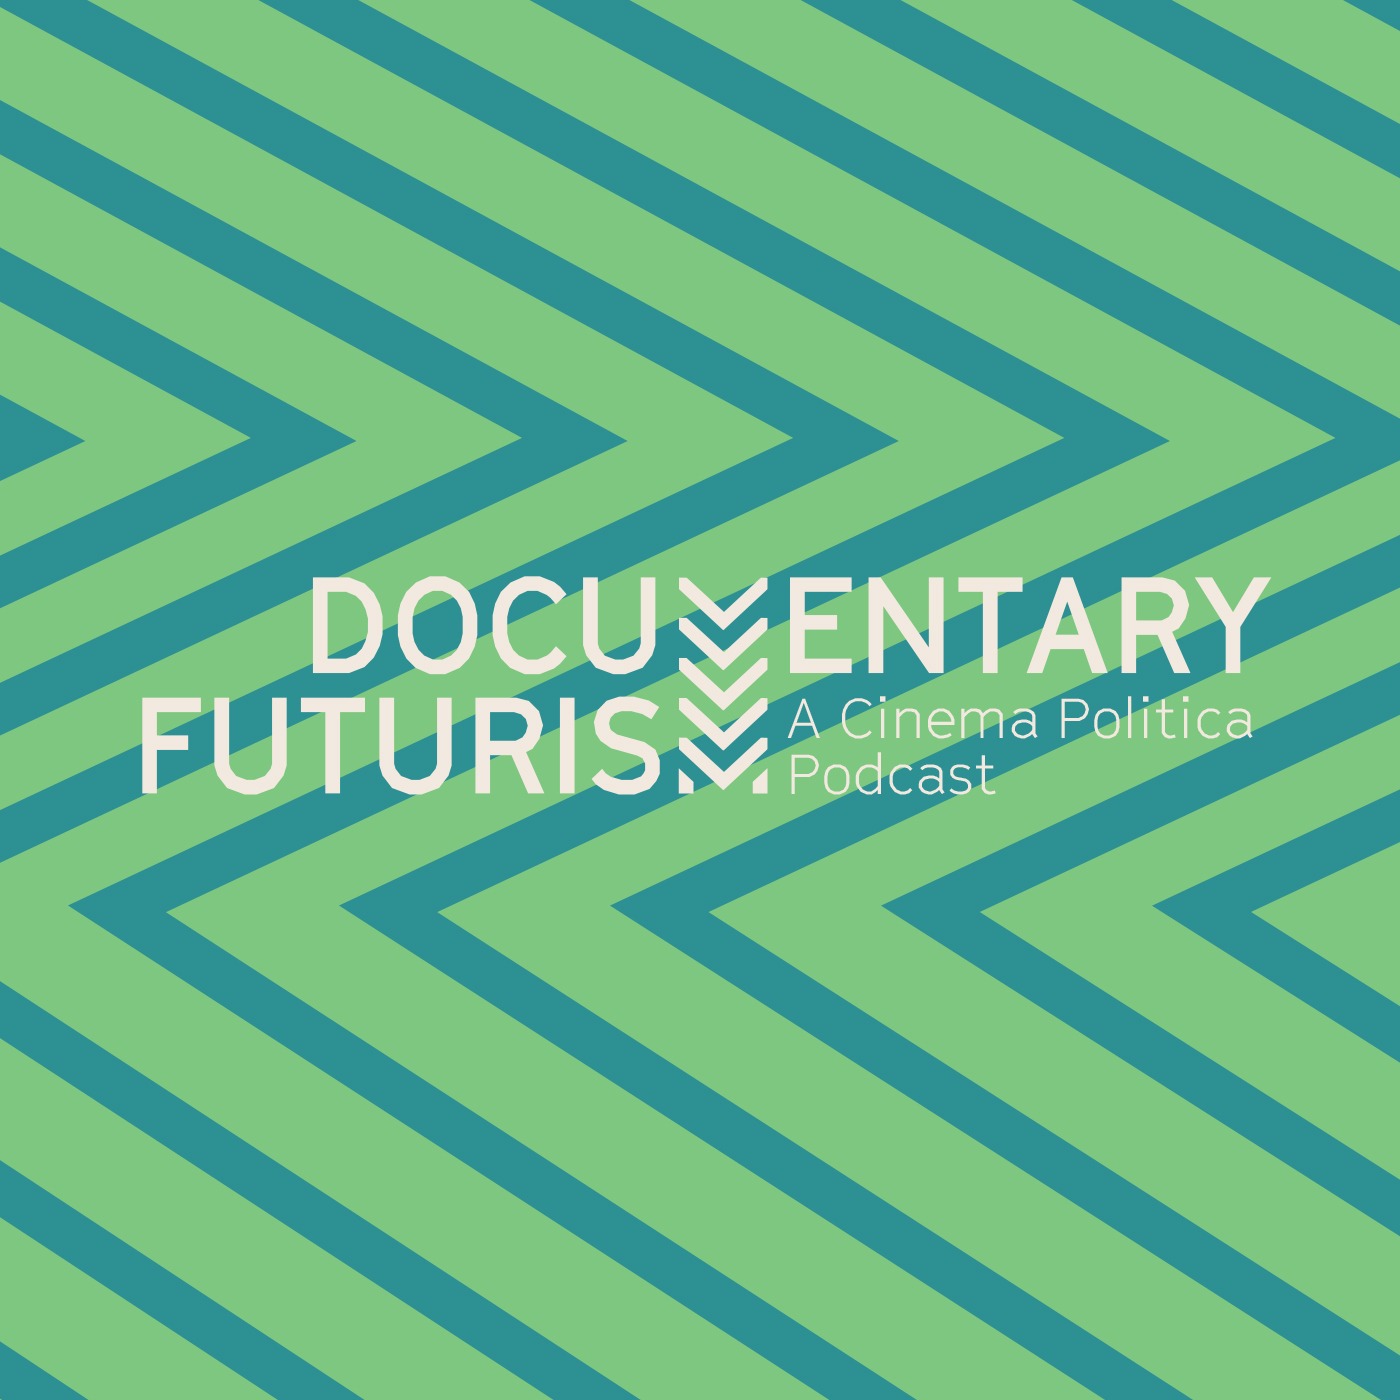 Episode 1: An Introduction to Documentary Futurism